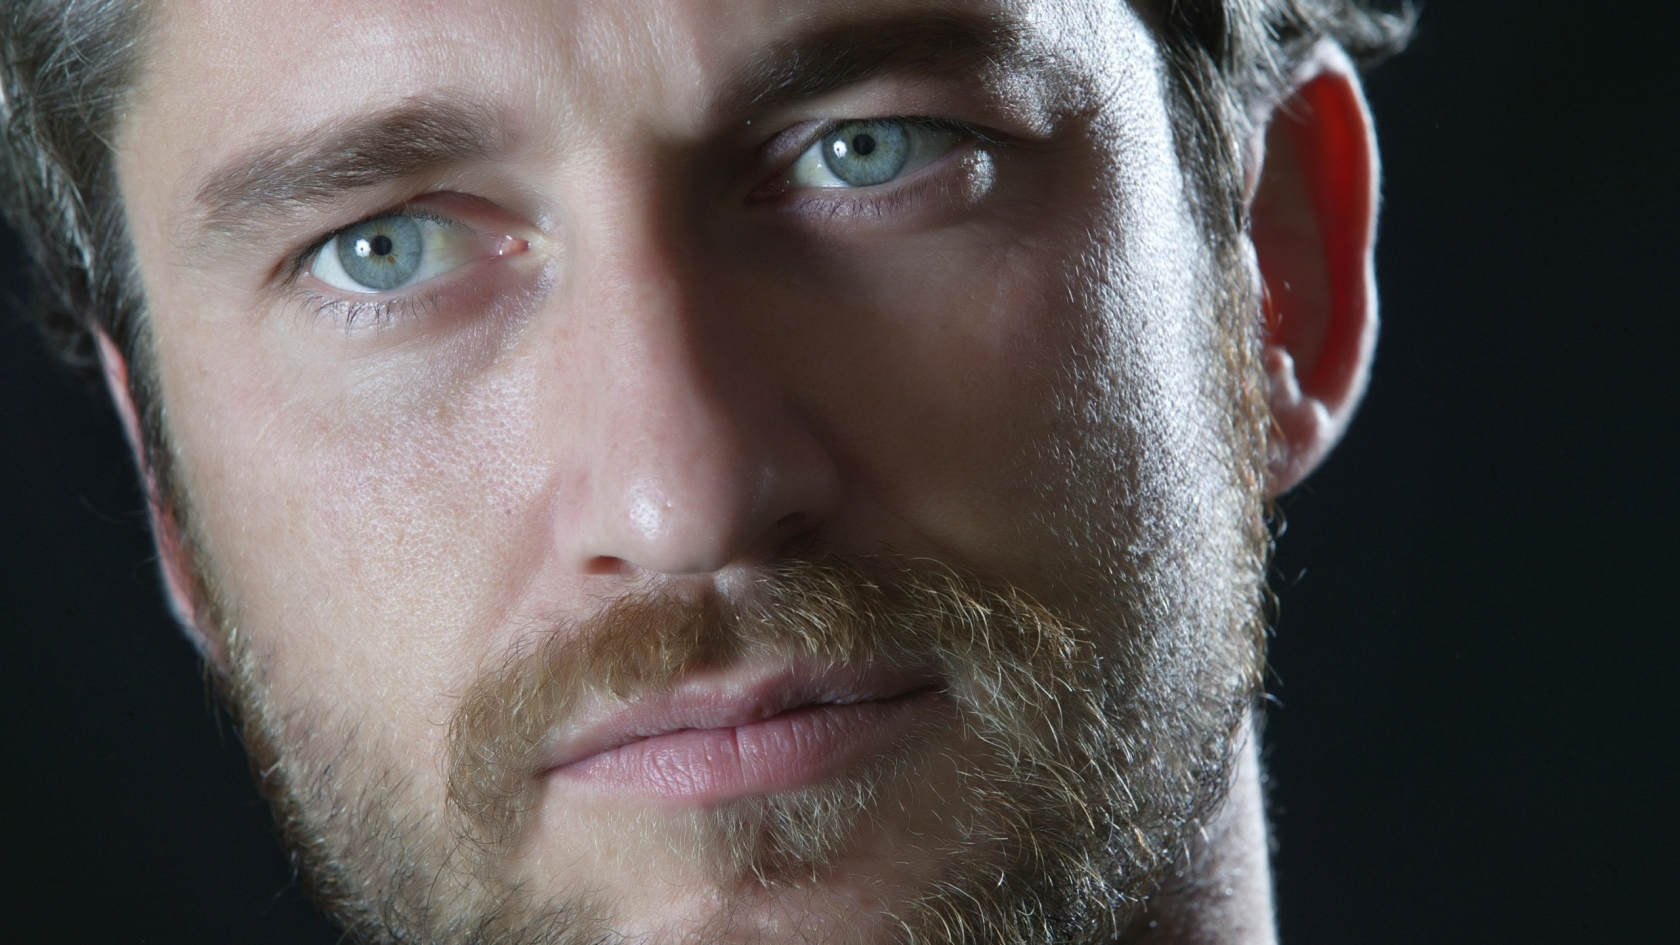 Gerard Butler Close Up for 1680 x 945 HDTV resolution